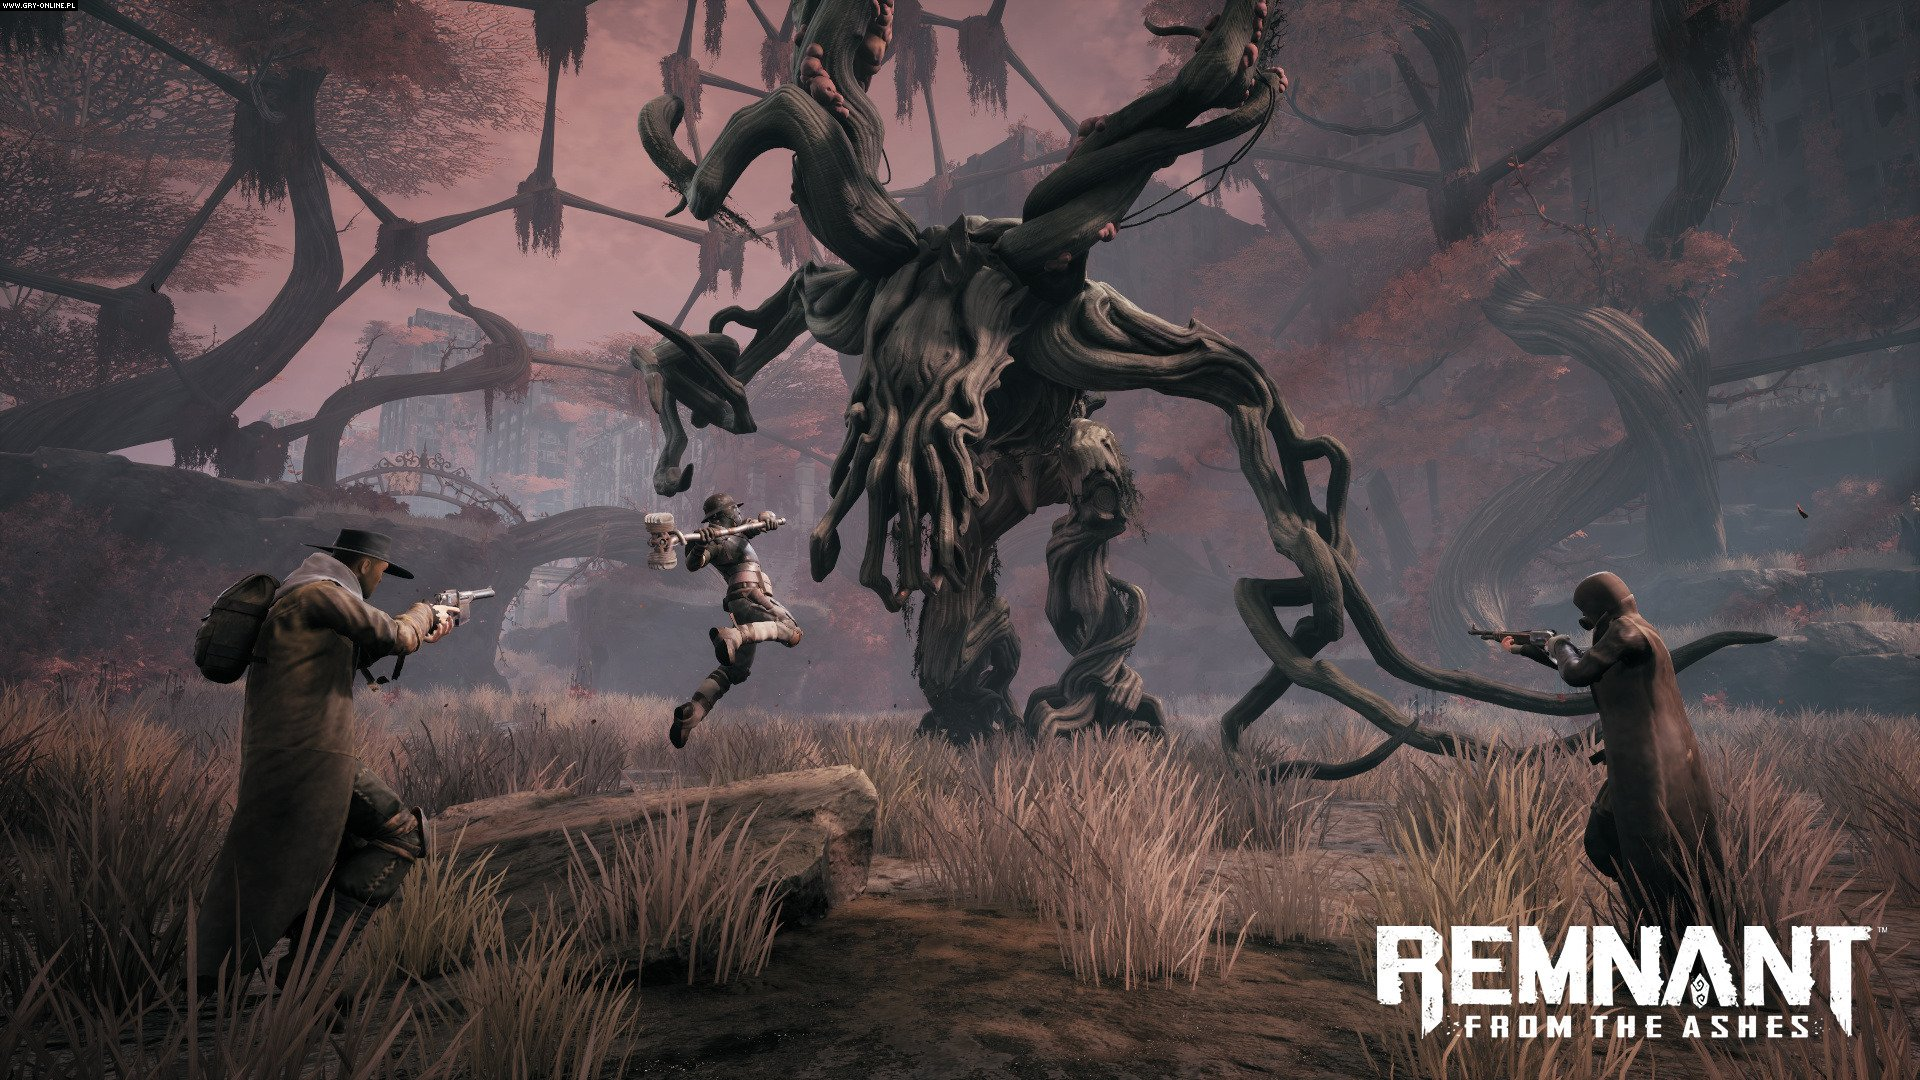 Remnant: From the Ashes PC, PS4, XONE Games Image 13/21, Gunfire Games, Perfect World Entertainment